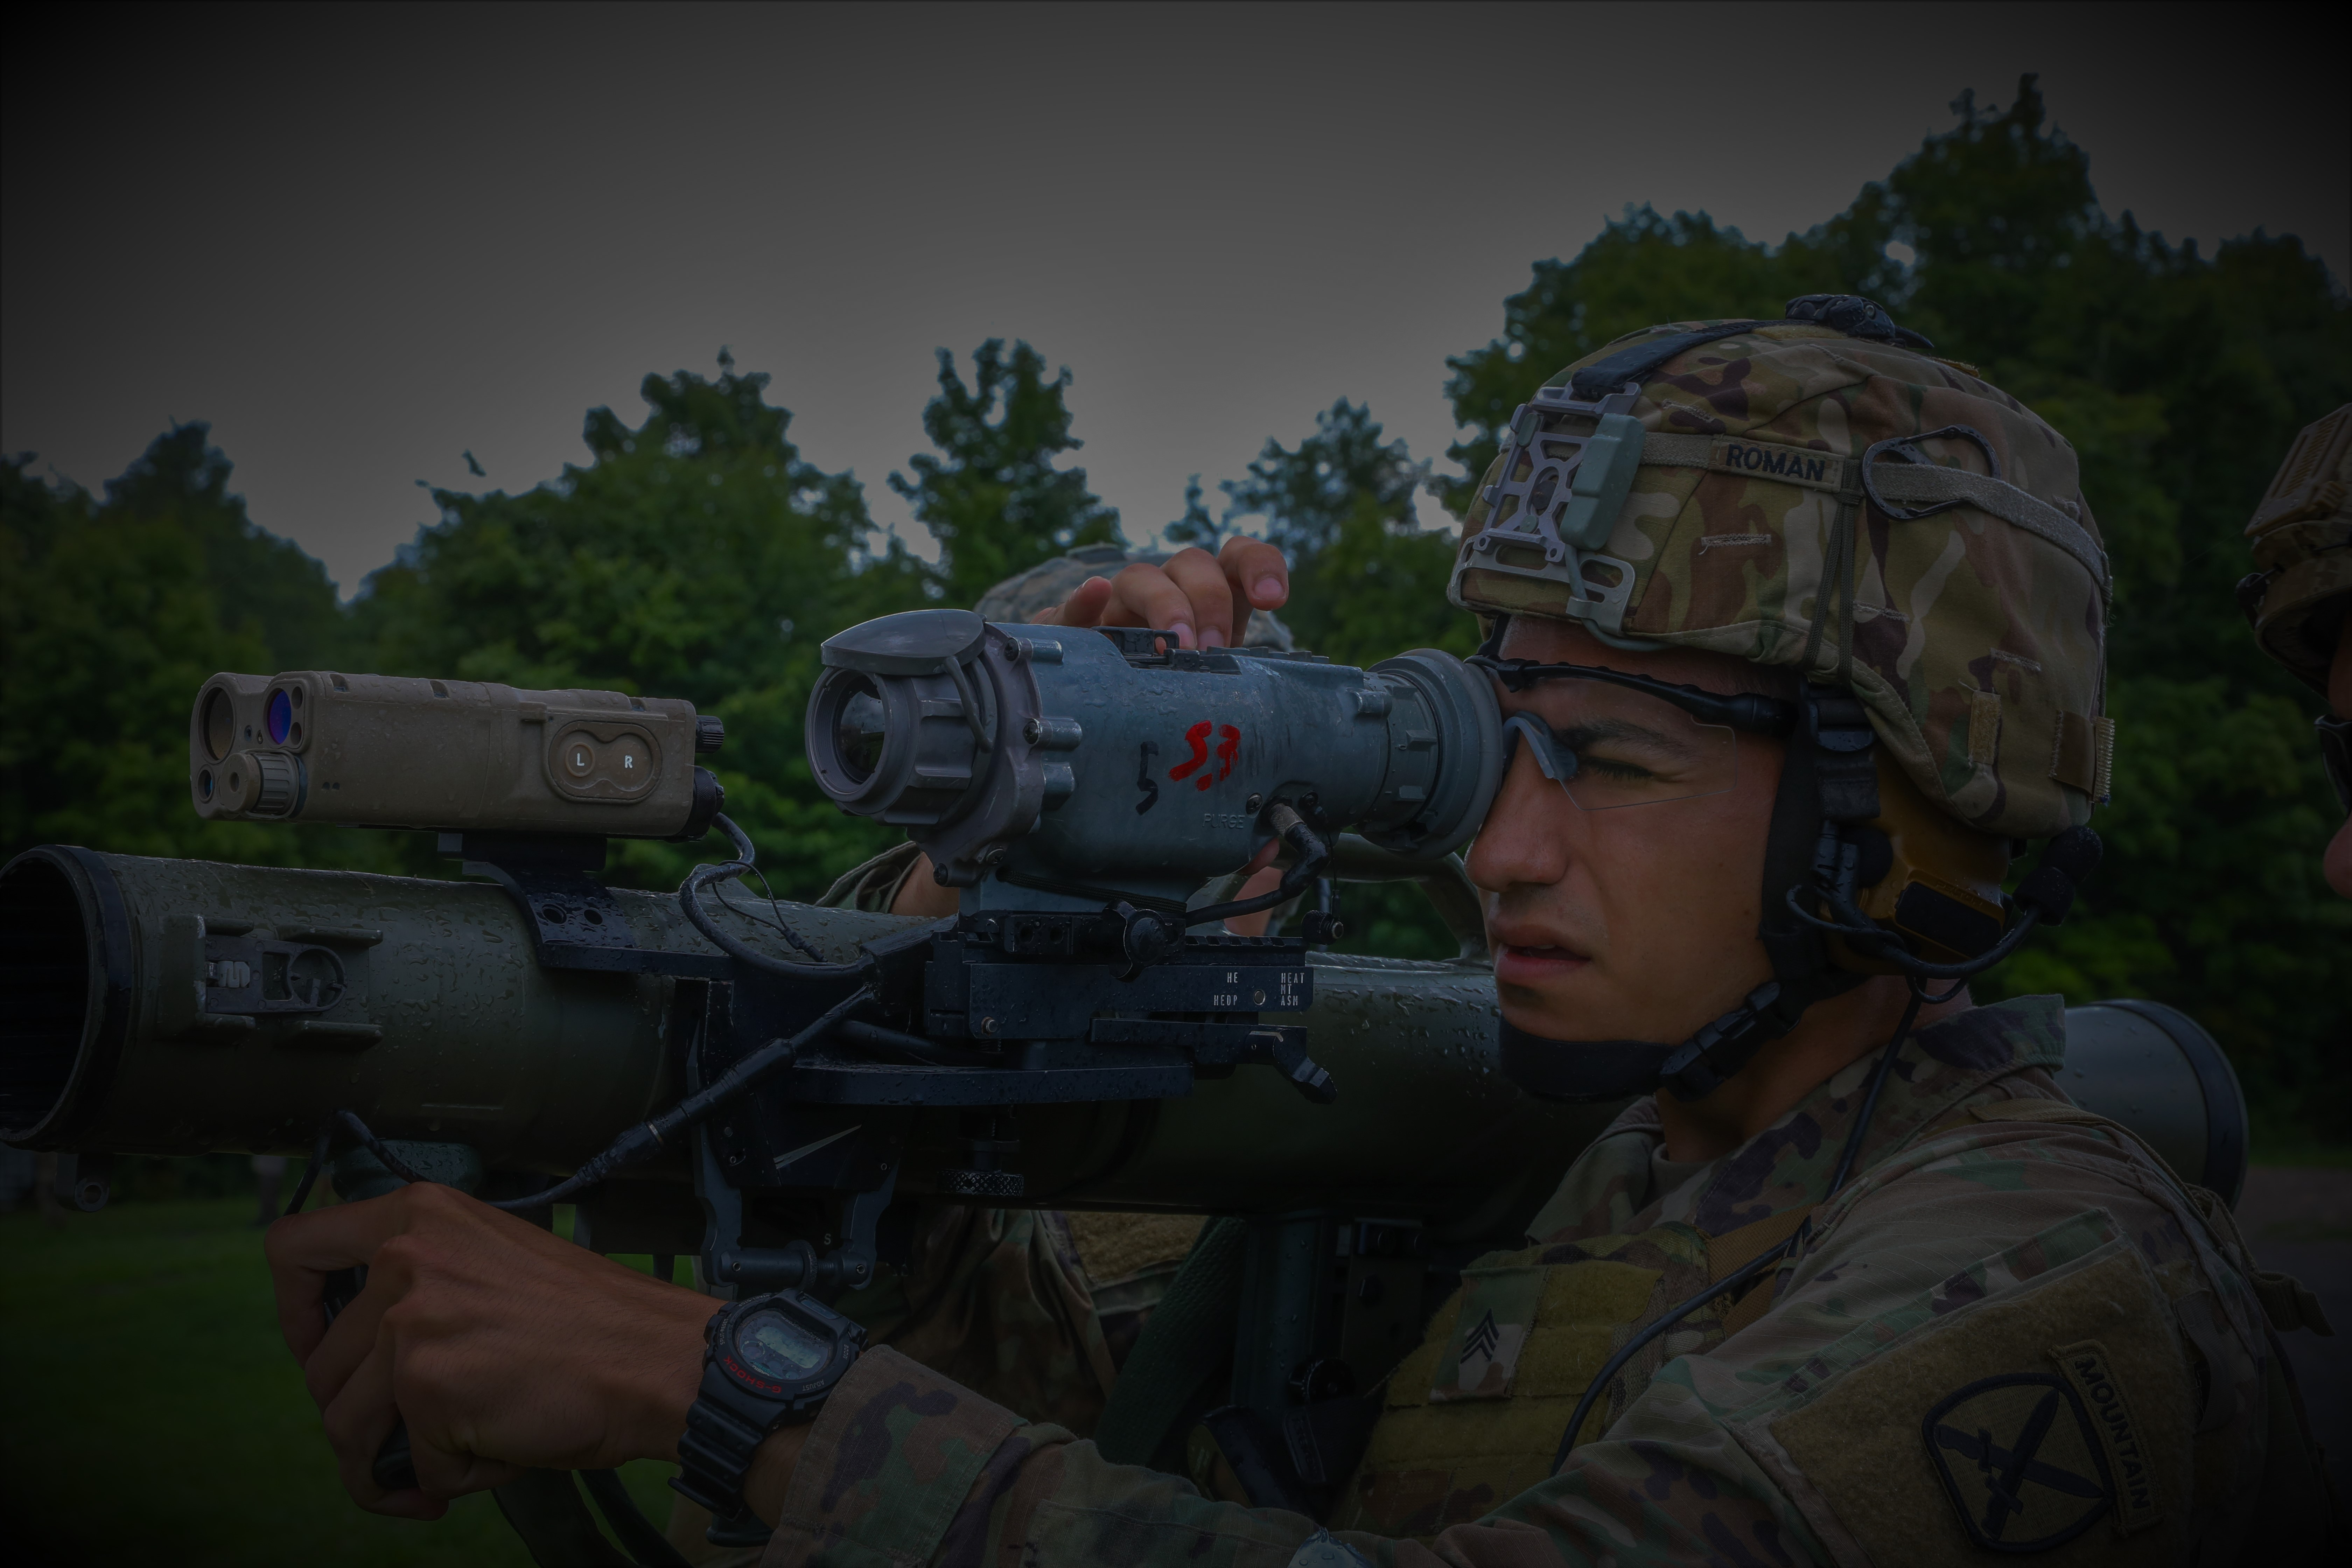 PEO Soldier_Edited_Vignette | JANUS Research Group